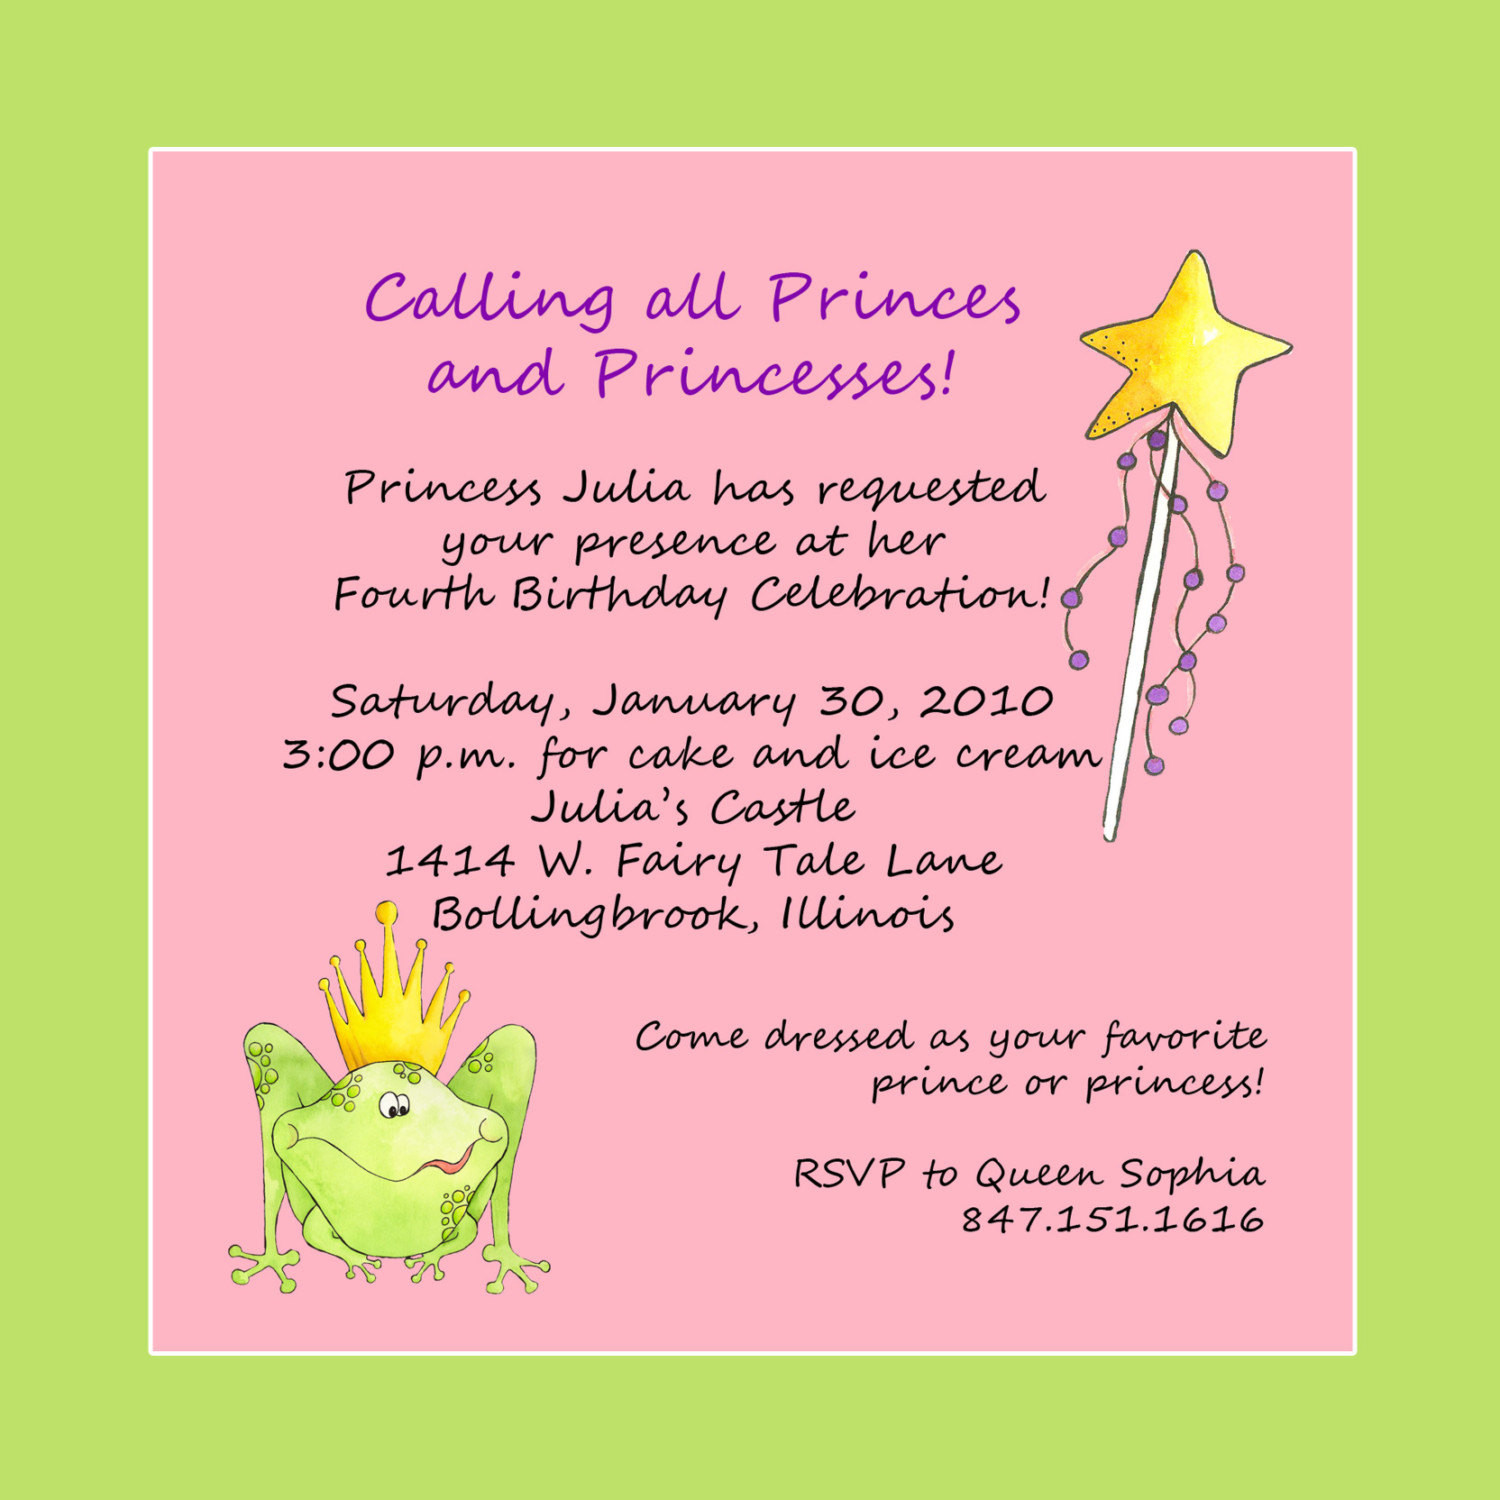 Best ideas about Birthday Party Invitation Message . Save or Pin Princess Theme Birthday Party Invitation Custom Wording Now.